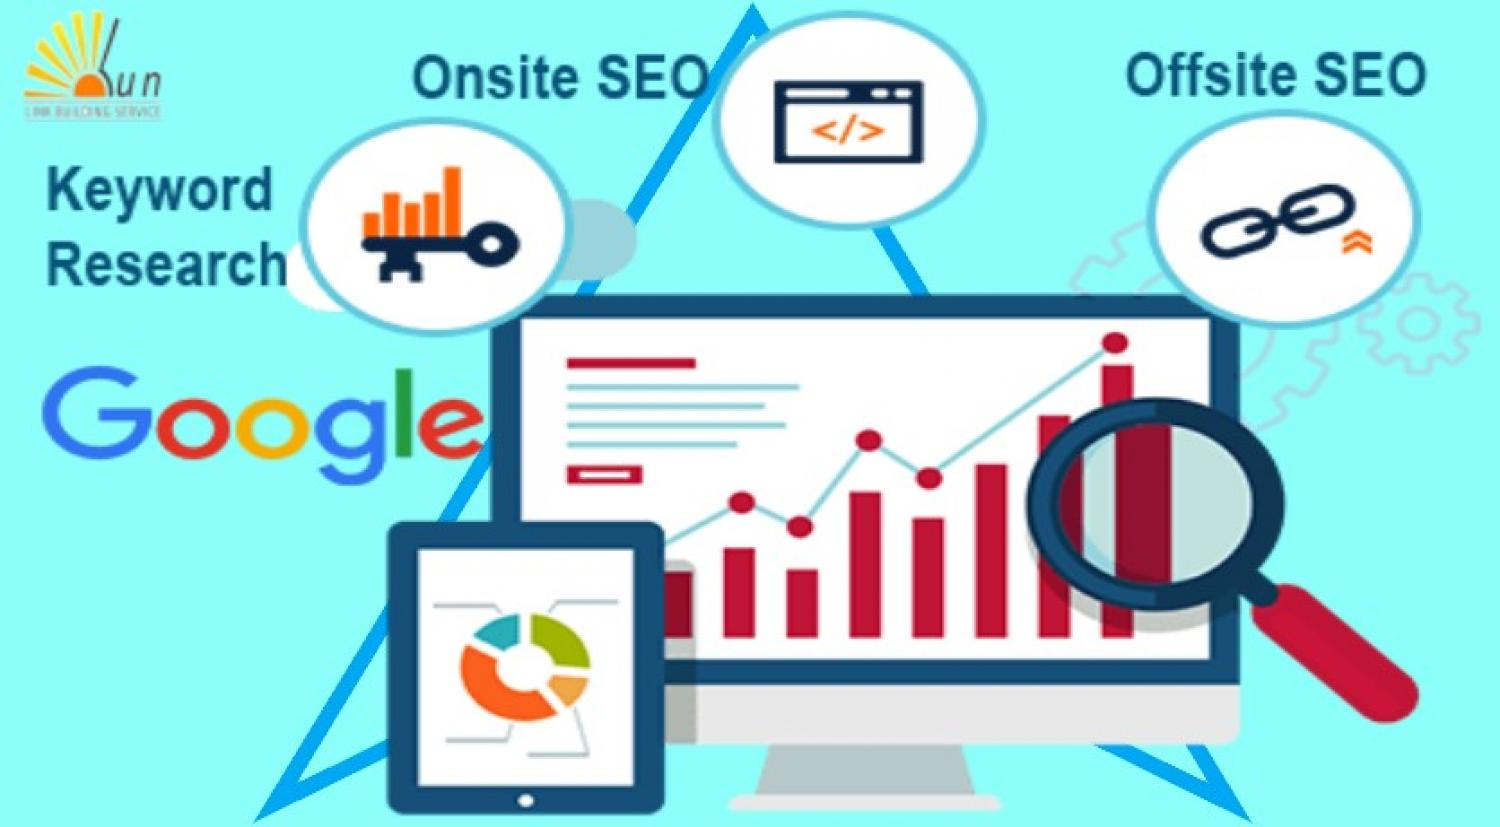 SEO Services Help to Get Top Search Engine Rankings